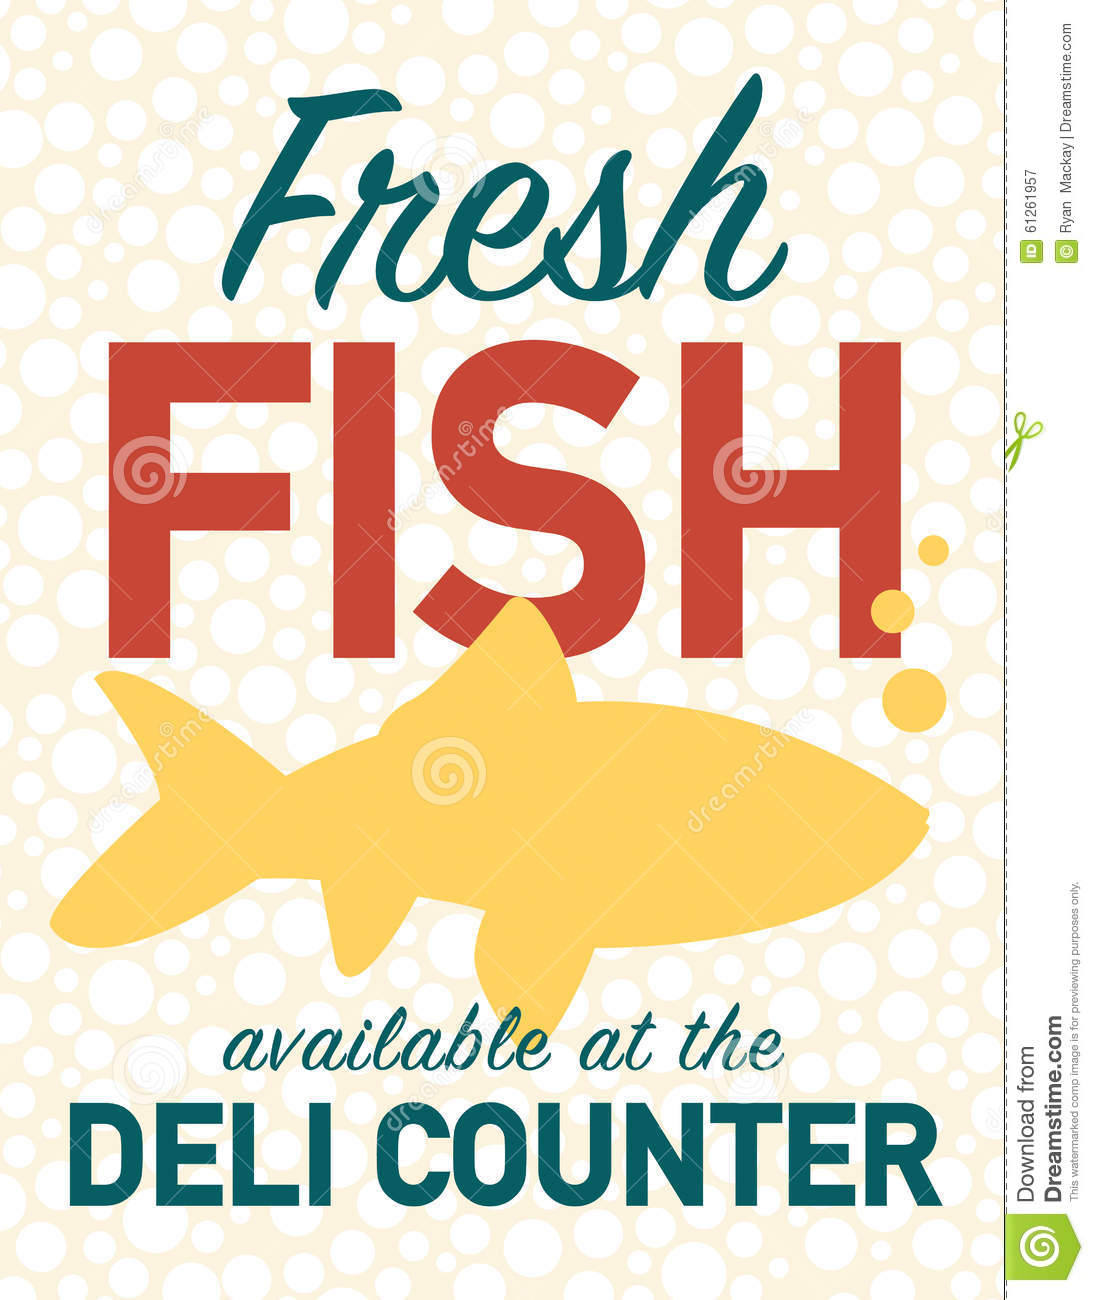 Fresh fish sign images galleries with for Www plenty of fish sign in